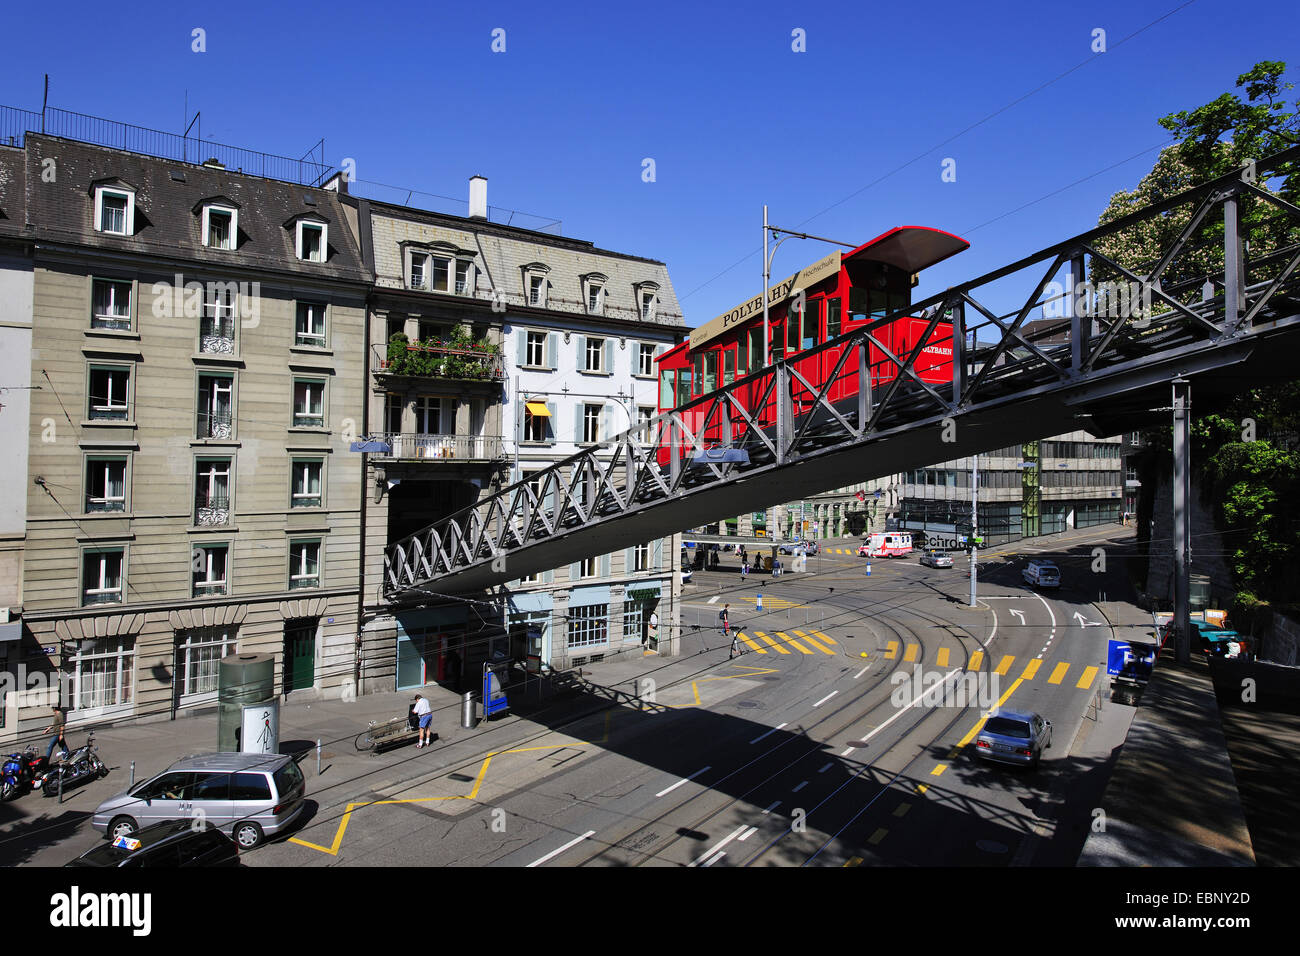 tram Polybahn on bridge conecting Central Square and University, Switzerland, Zurich Stock Photo